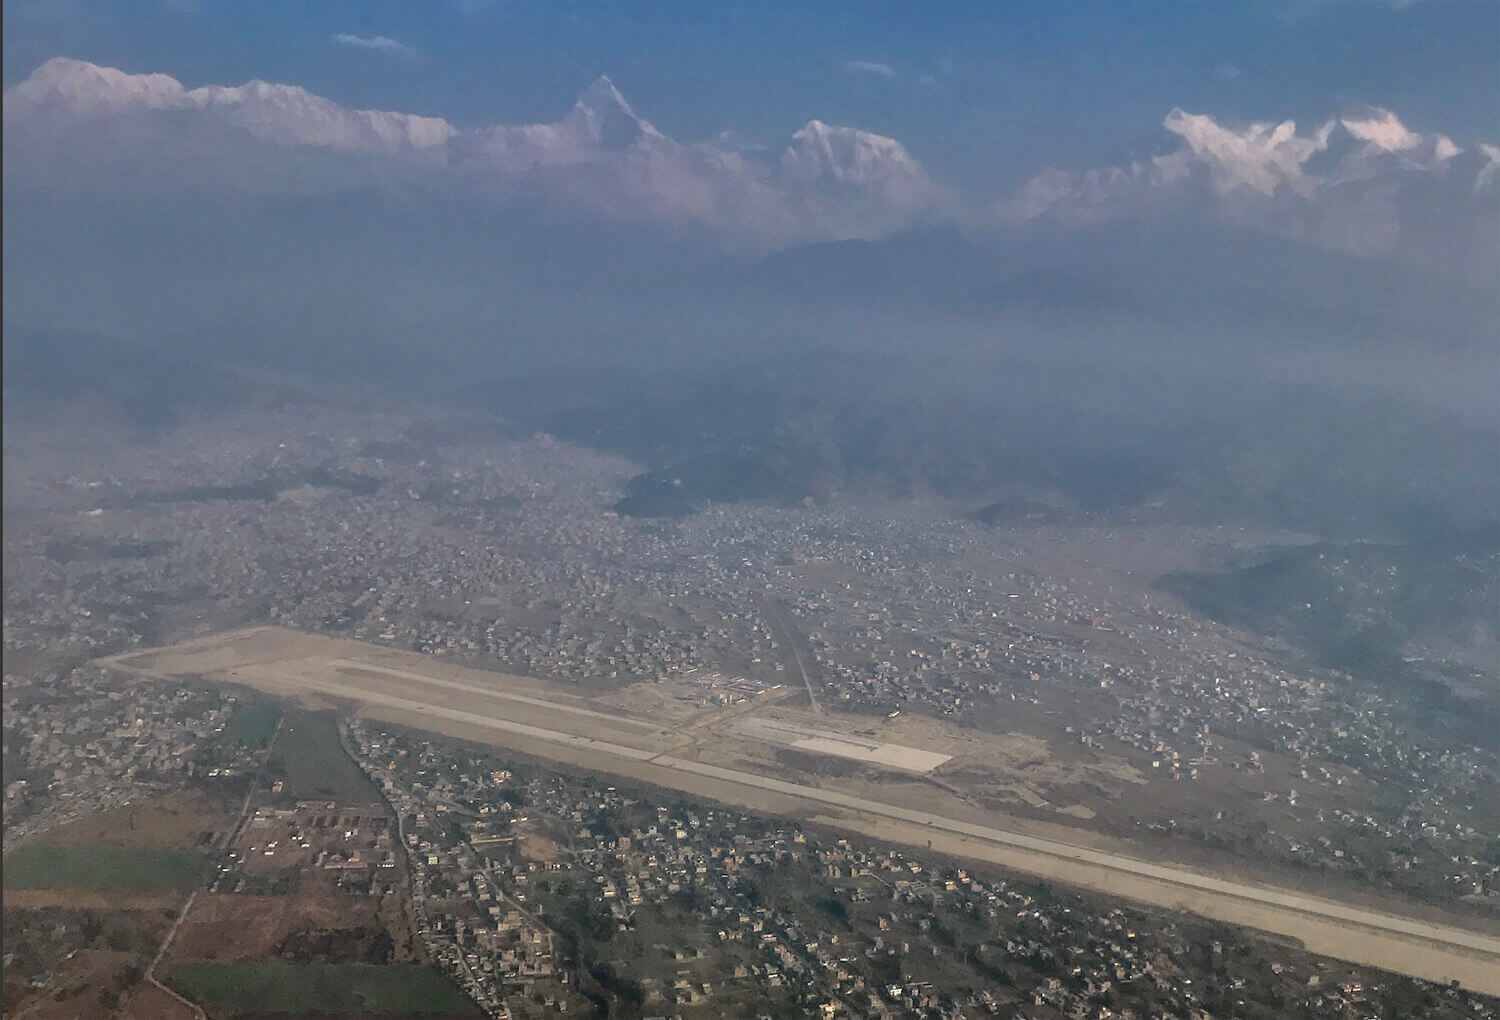 Construction of Pokhara's much-awaited new international airport has gathered pace, and is expected to be completed in early 2020. An aerial view taken on Sunday morning.